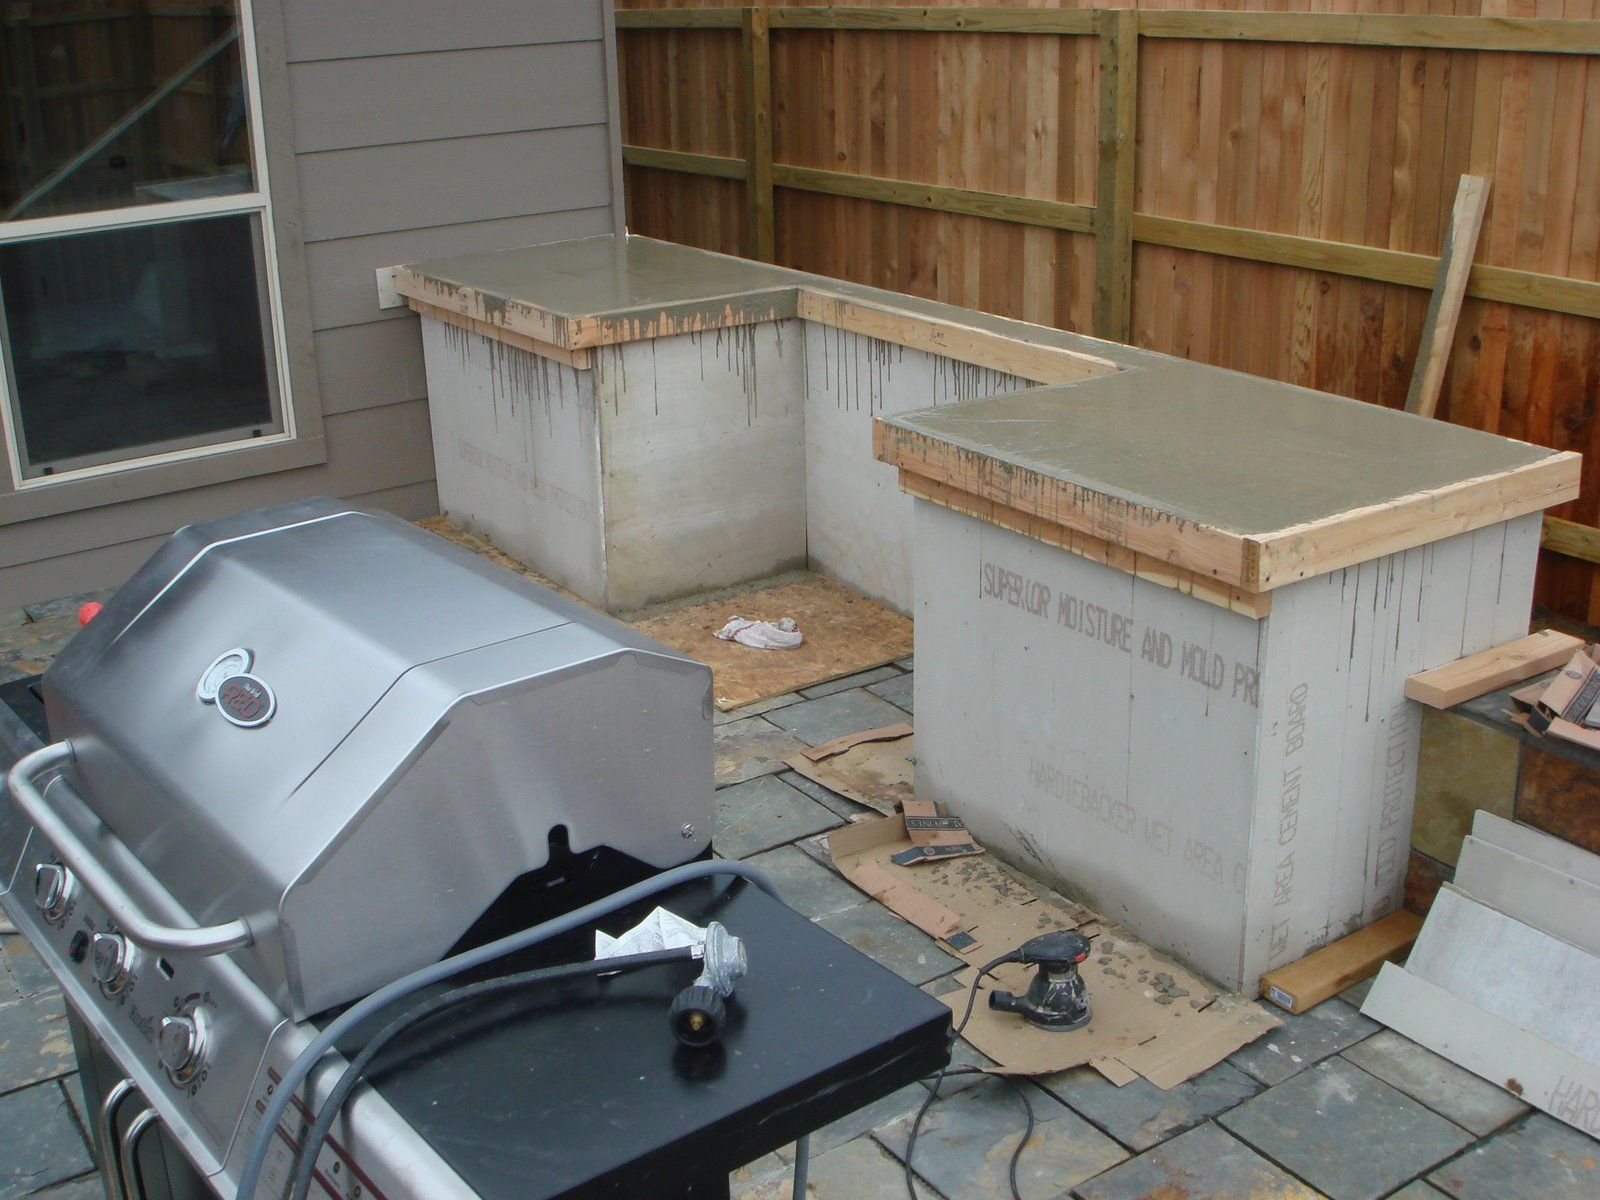 how to build outdoor kitchen cabinets pictures of kitchen cabinets Make them sturdy